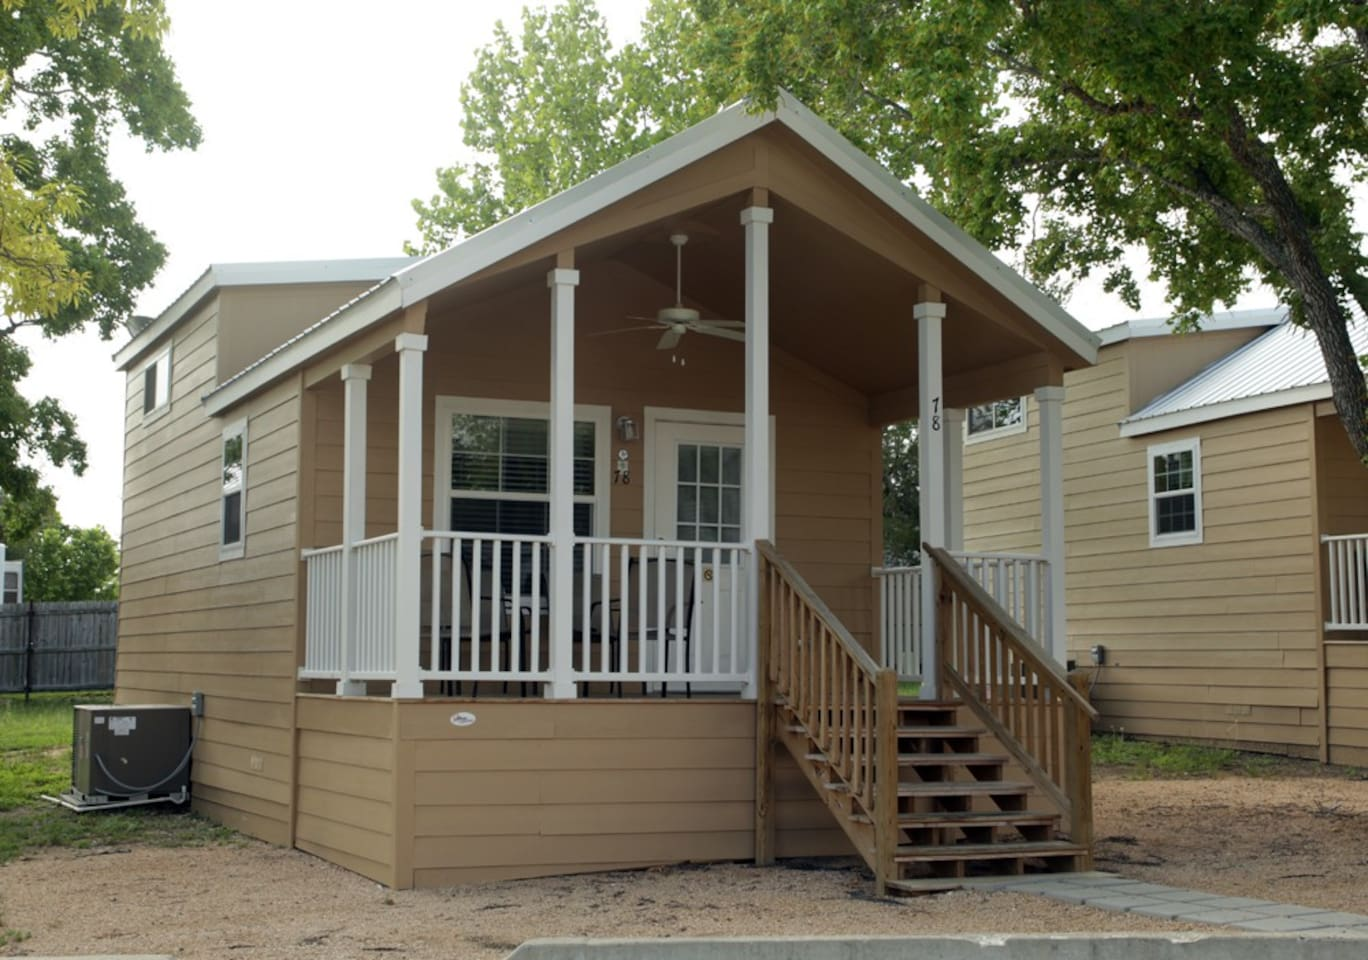 Guadalupe Cottage in New Braunfels, Texas